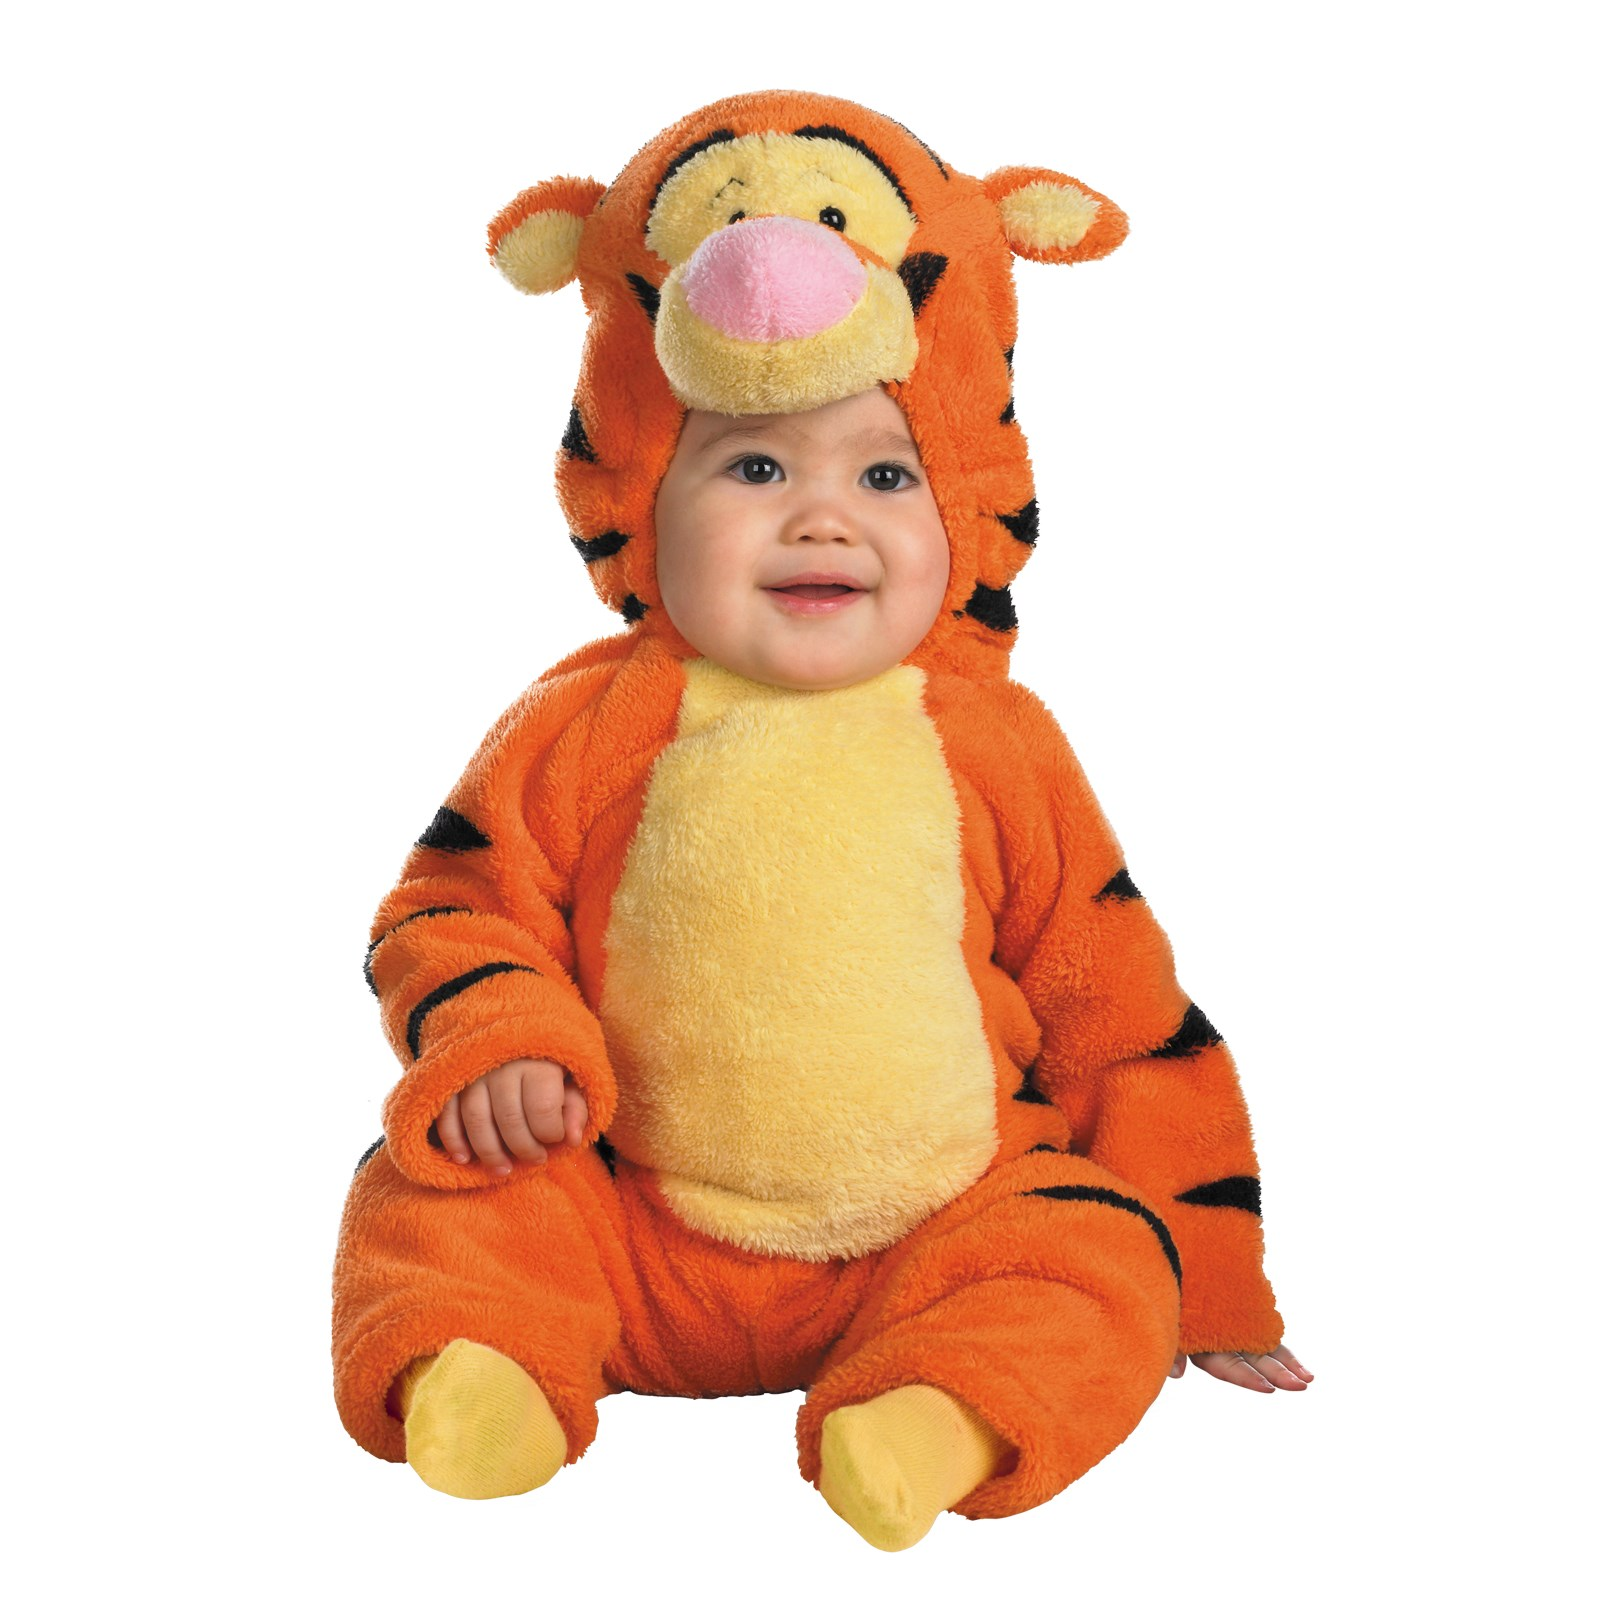 Winnie the Pooh - Tigger Infant Costume Toddler (2T)